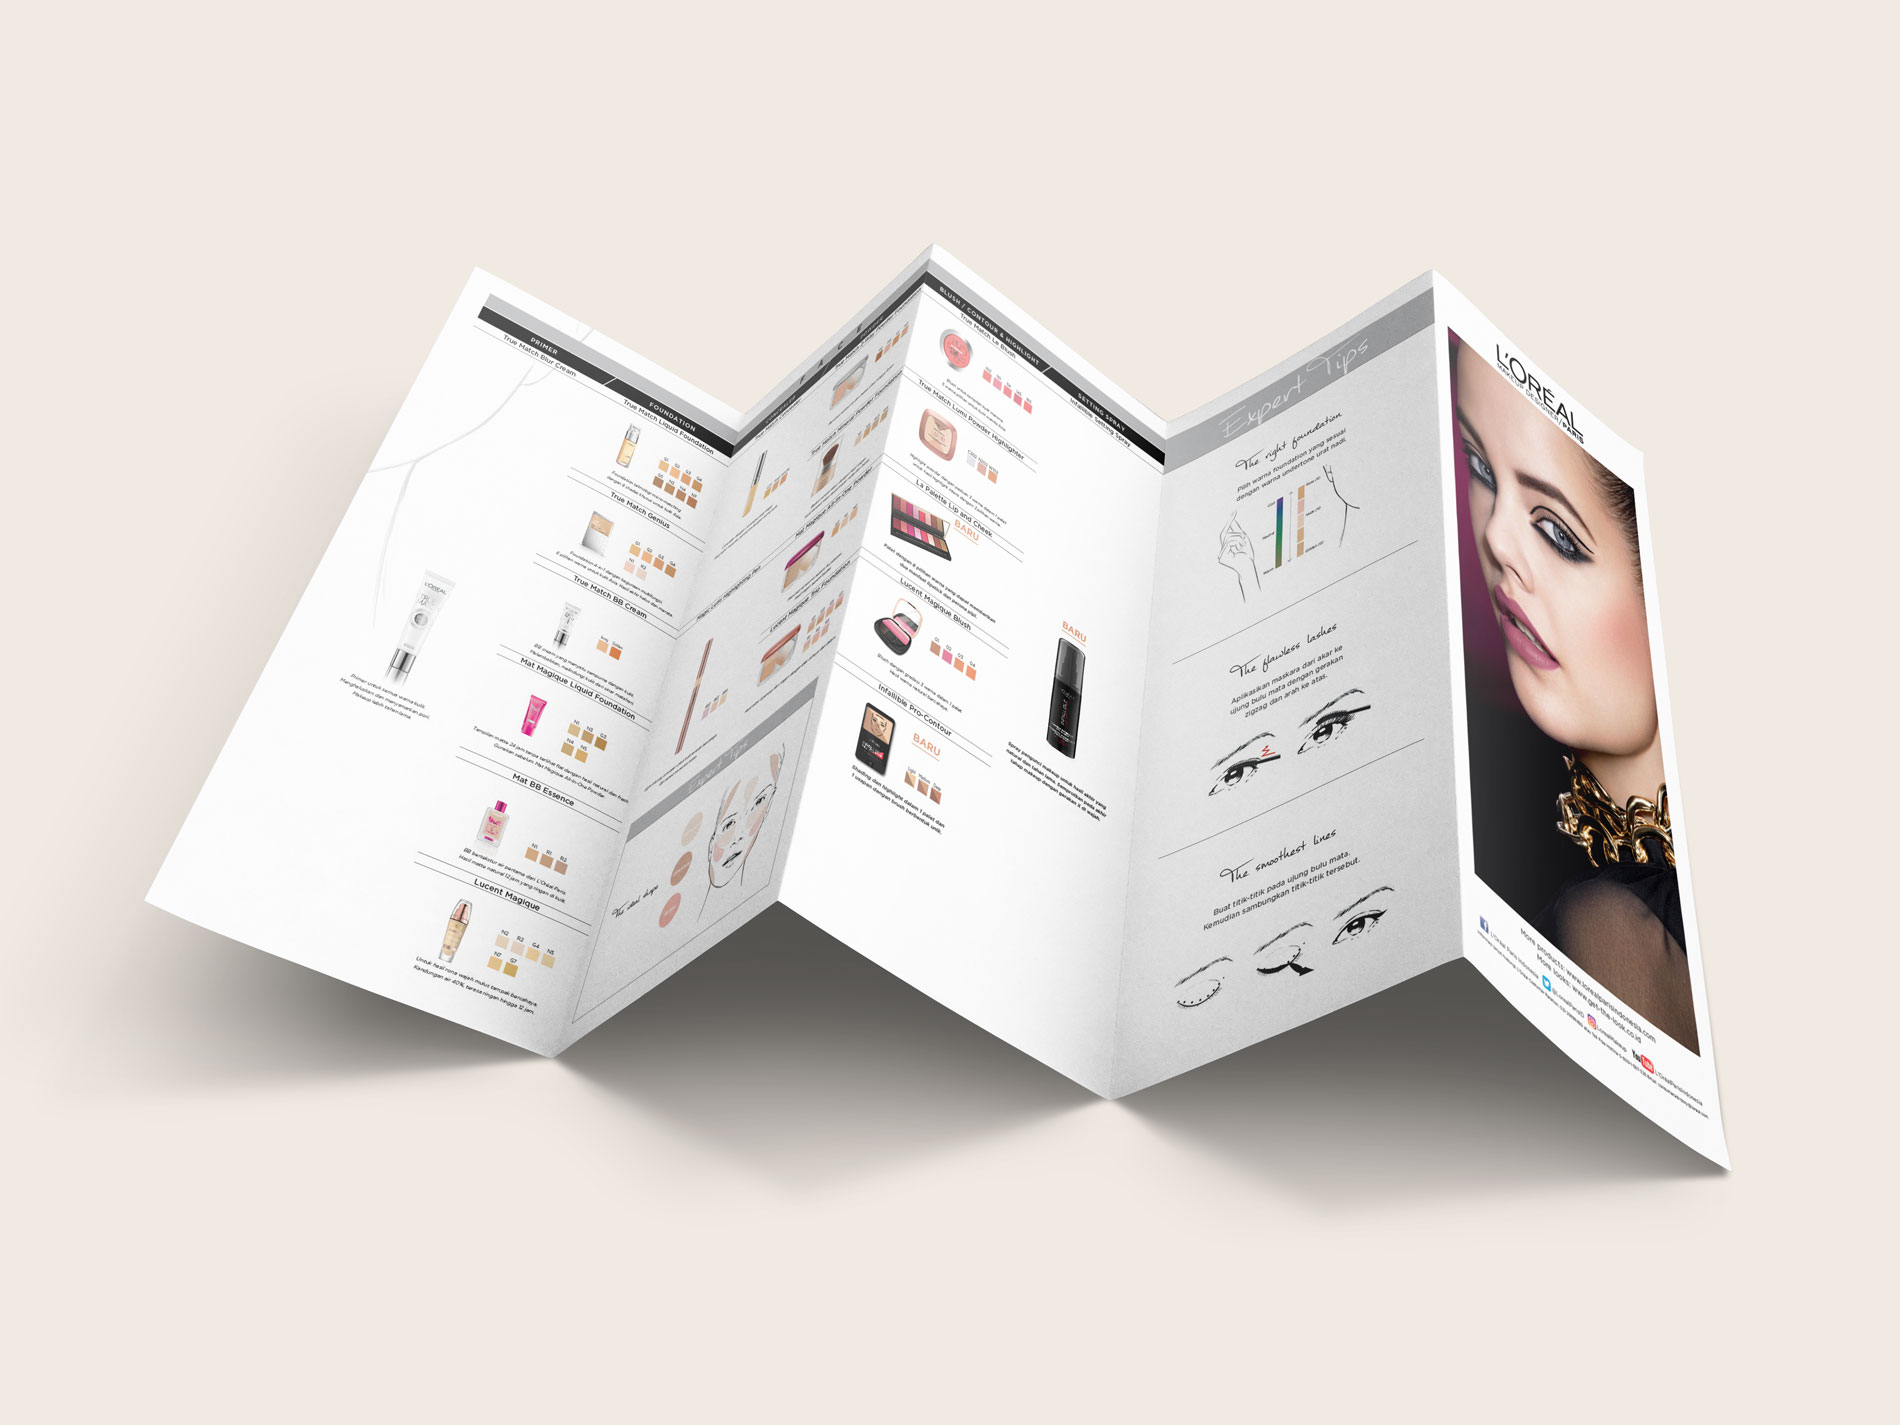 6 catalogue design insight - make it functional